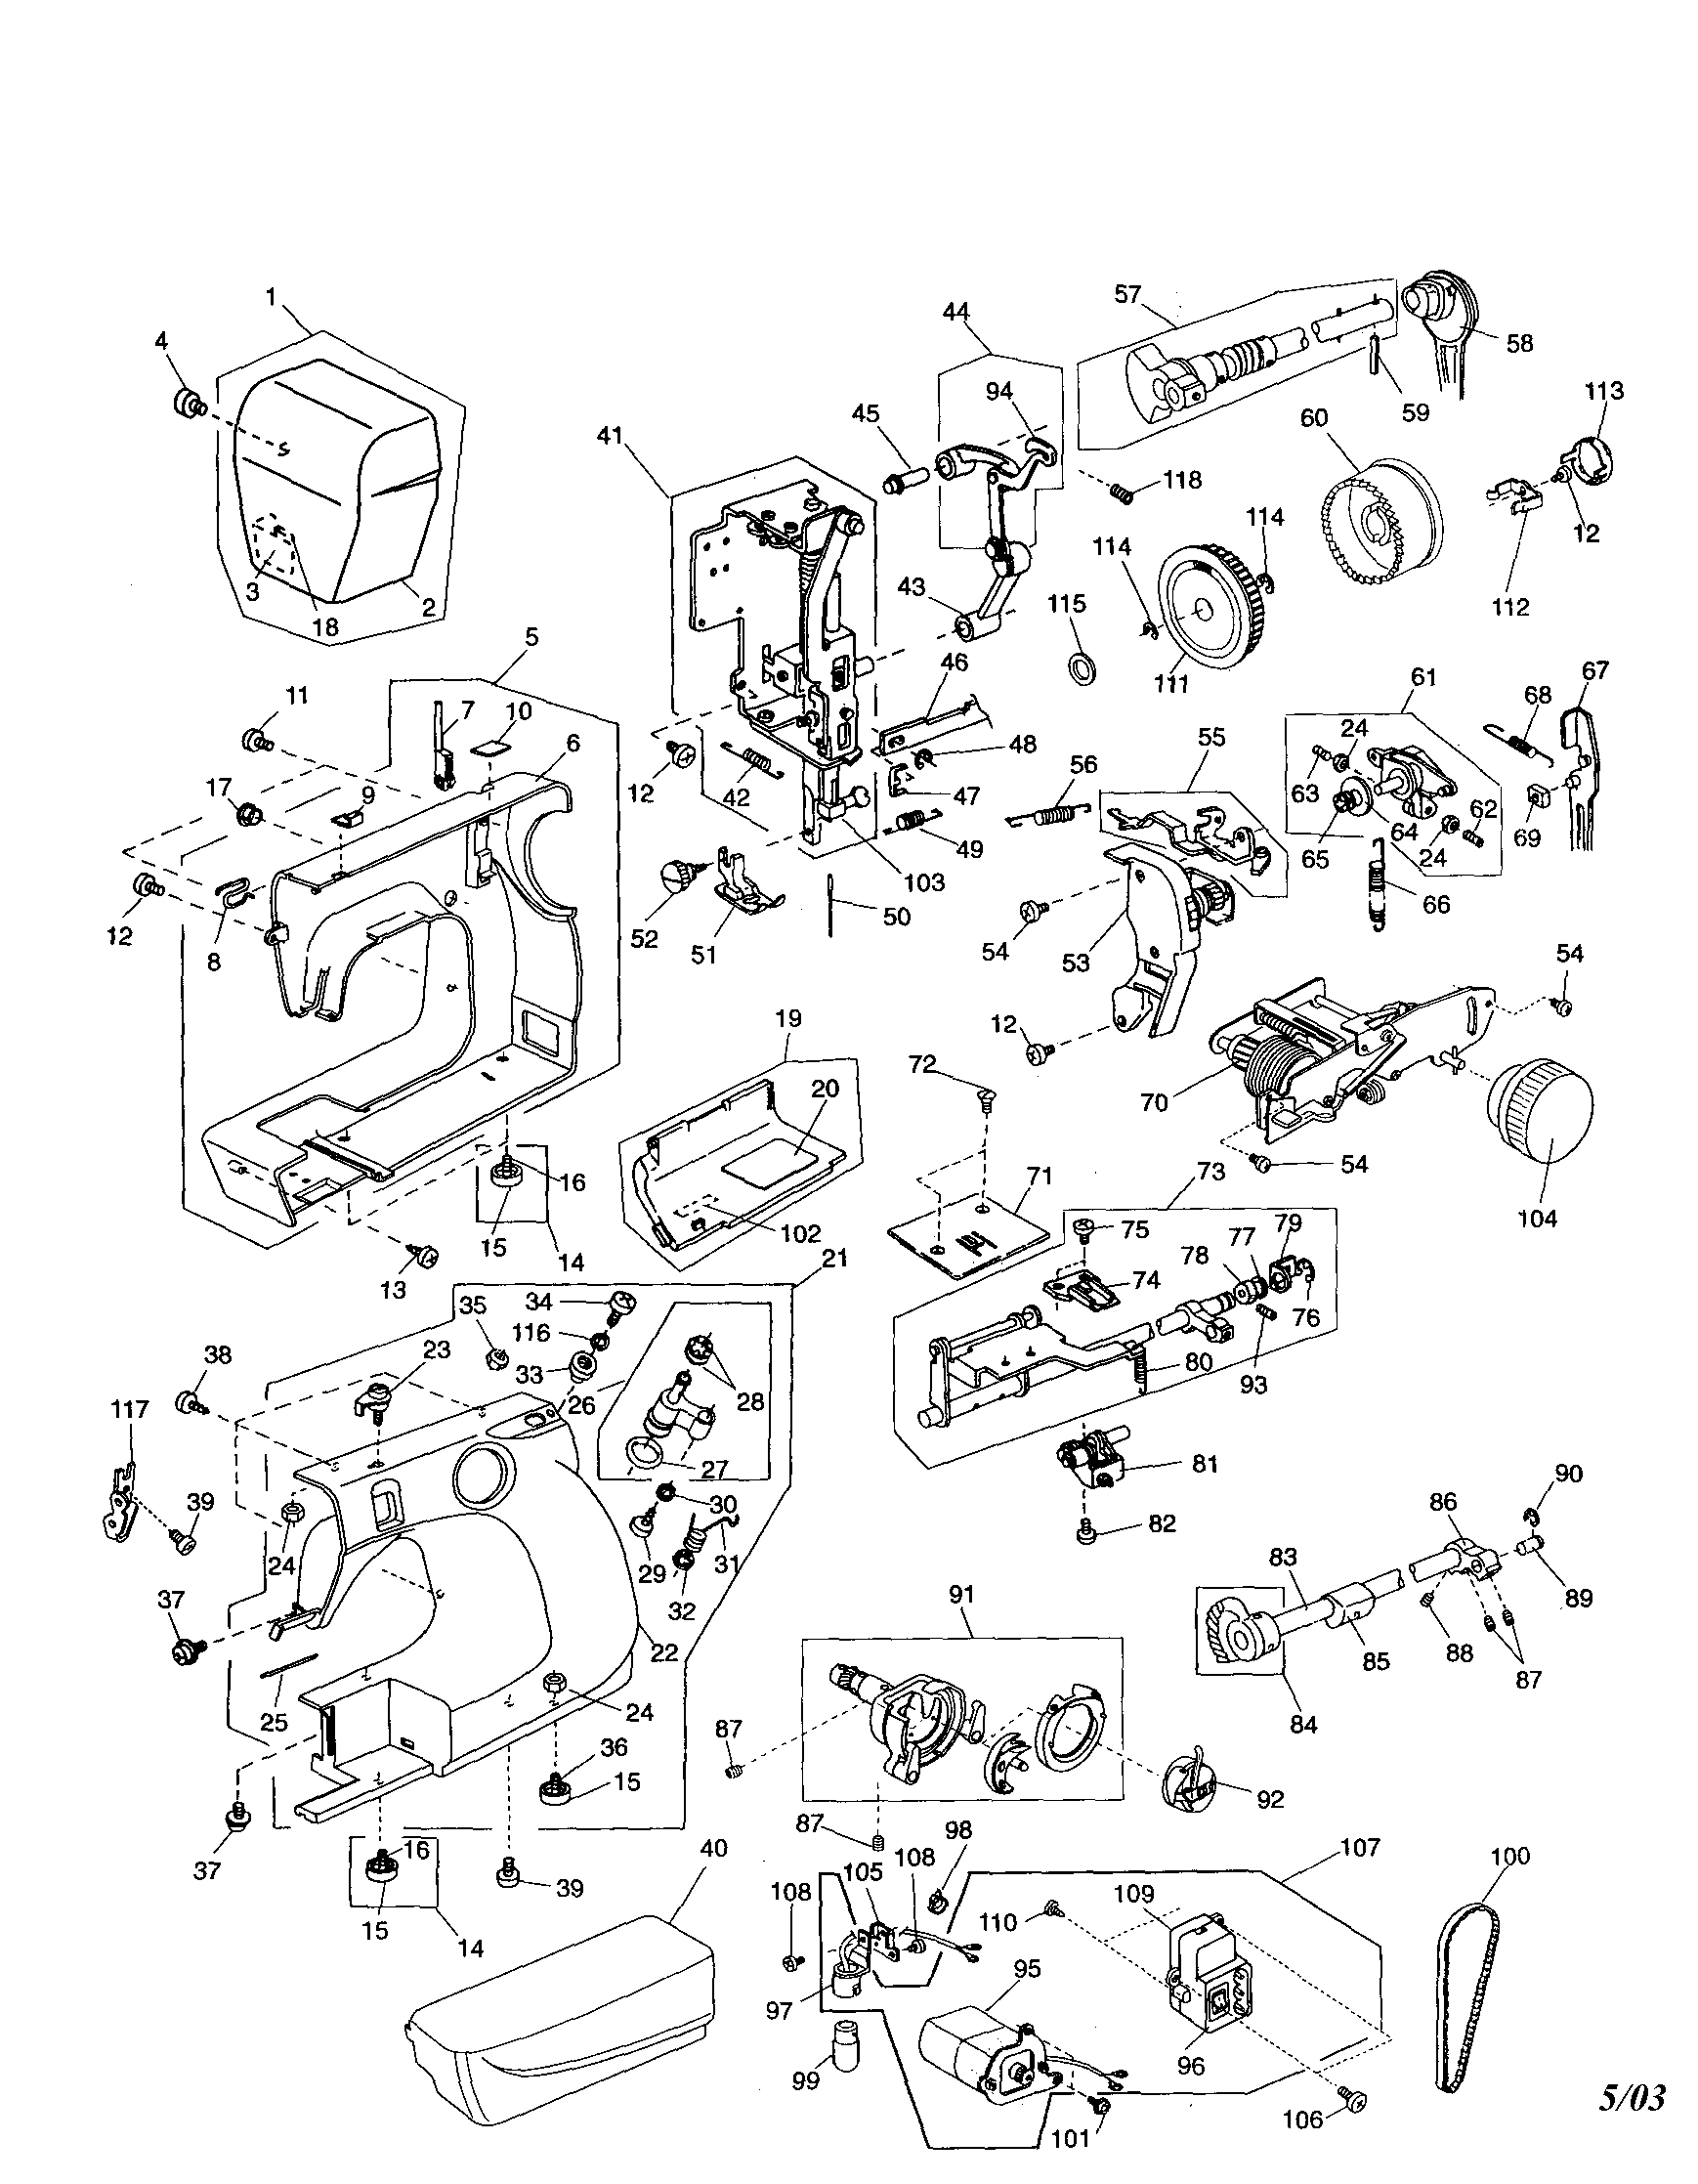 9b1700f59a88464b30cfb8e34f3e6e2d kenmore sewing machine model 38511206300 sewing machine parts machine parts diagram at gsmx.co